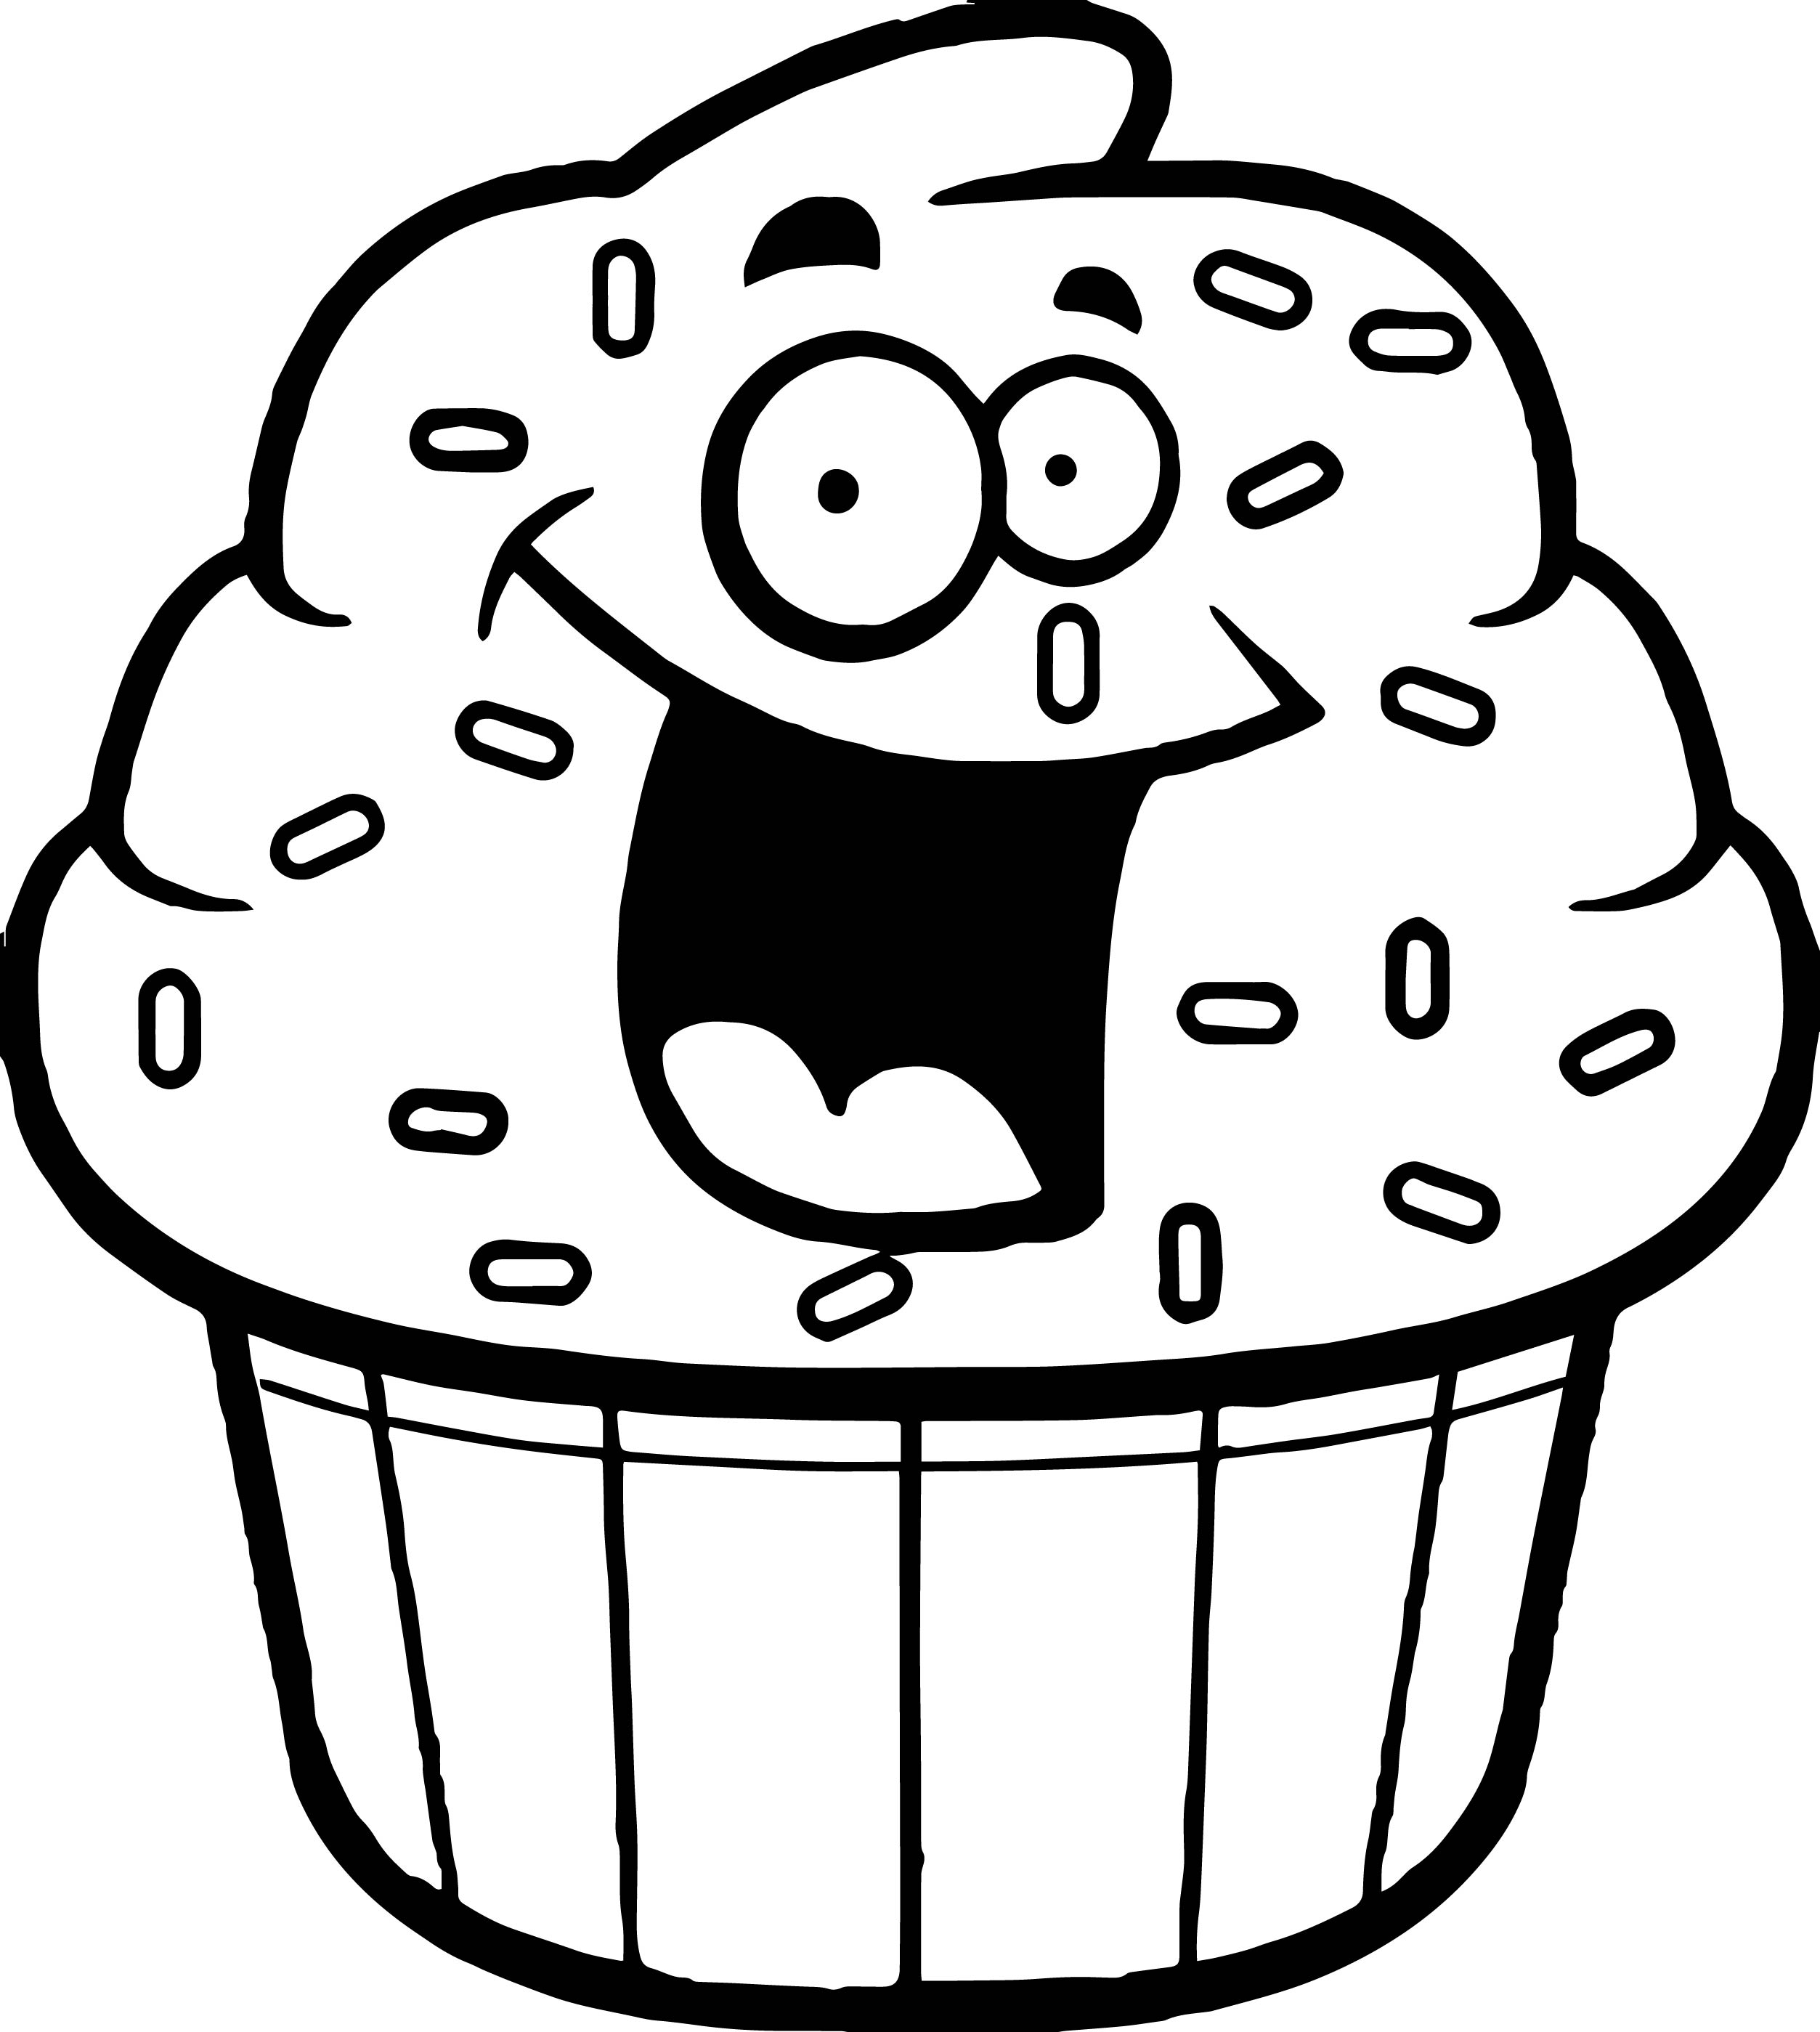 Cupcake outline amazing cartoon cupcake coloring page outline black white